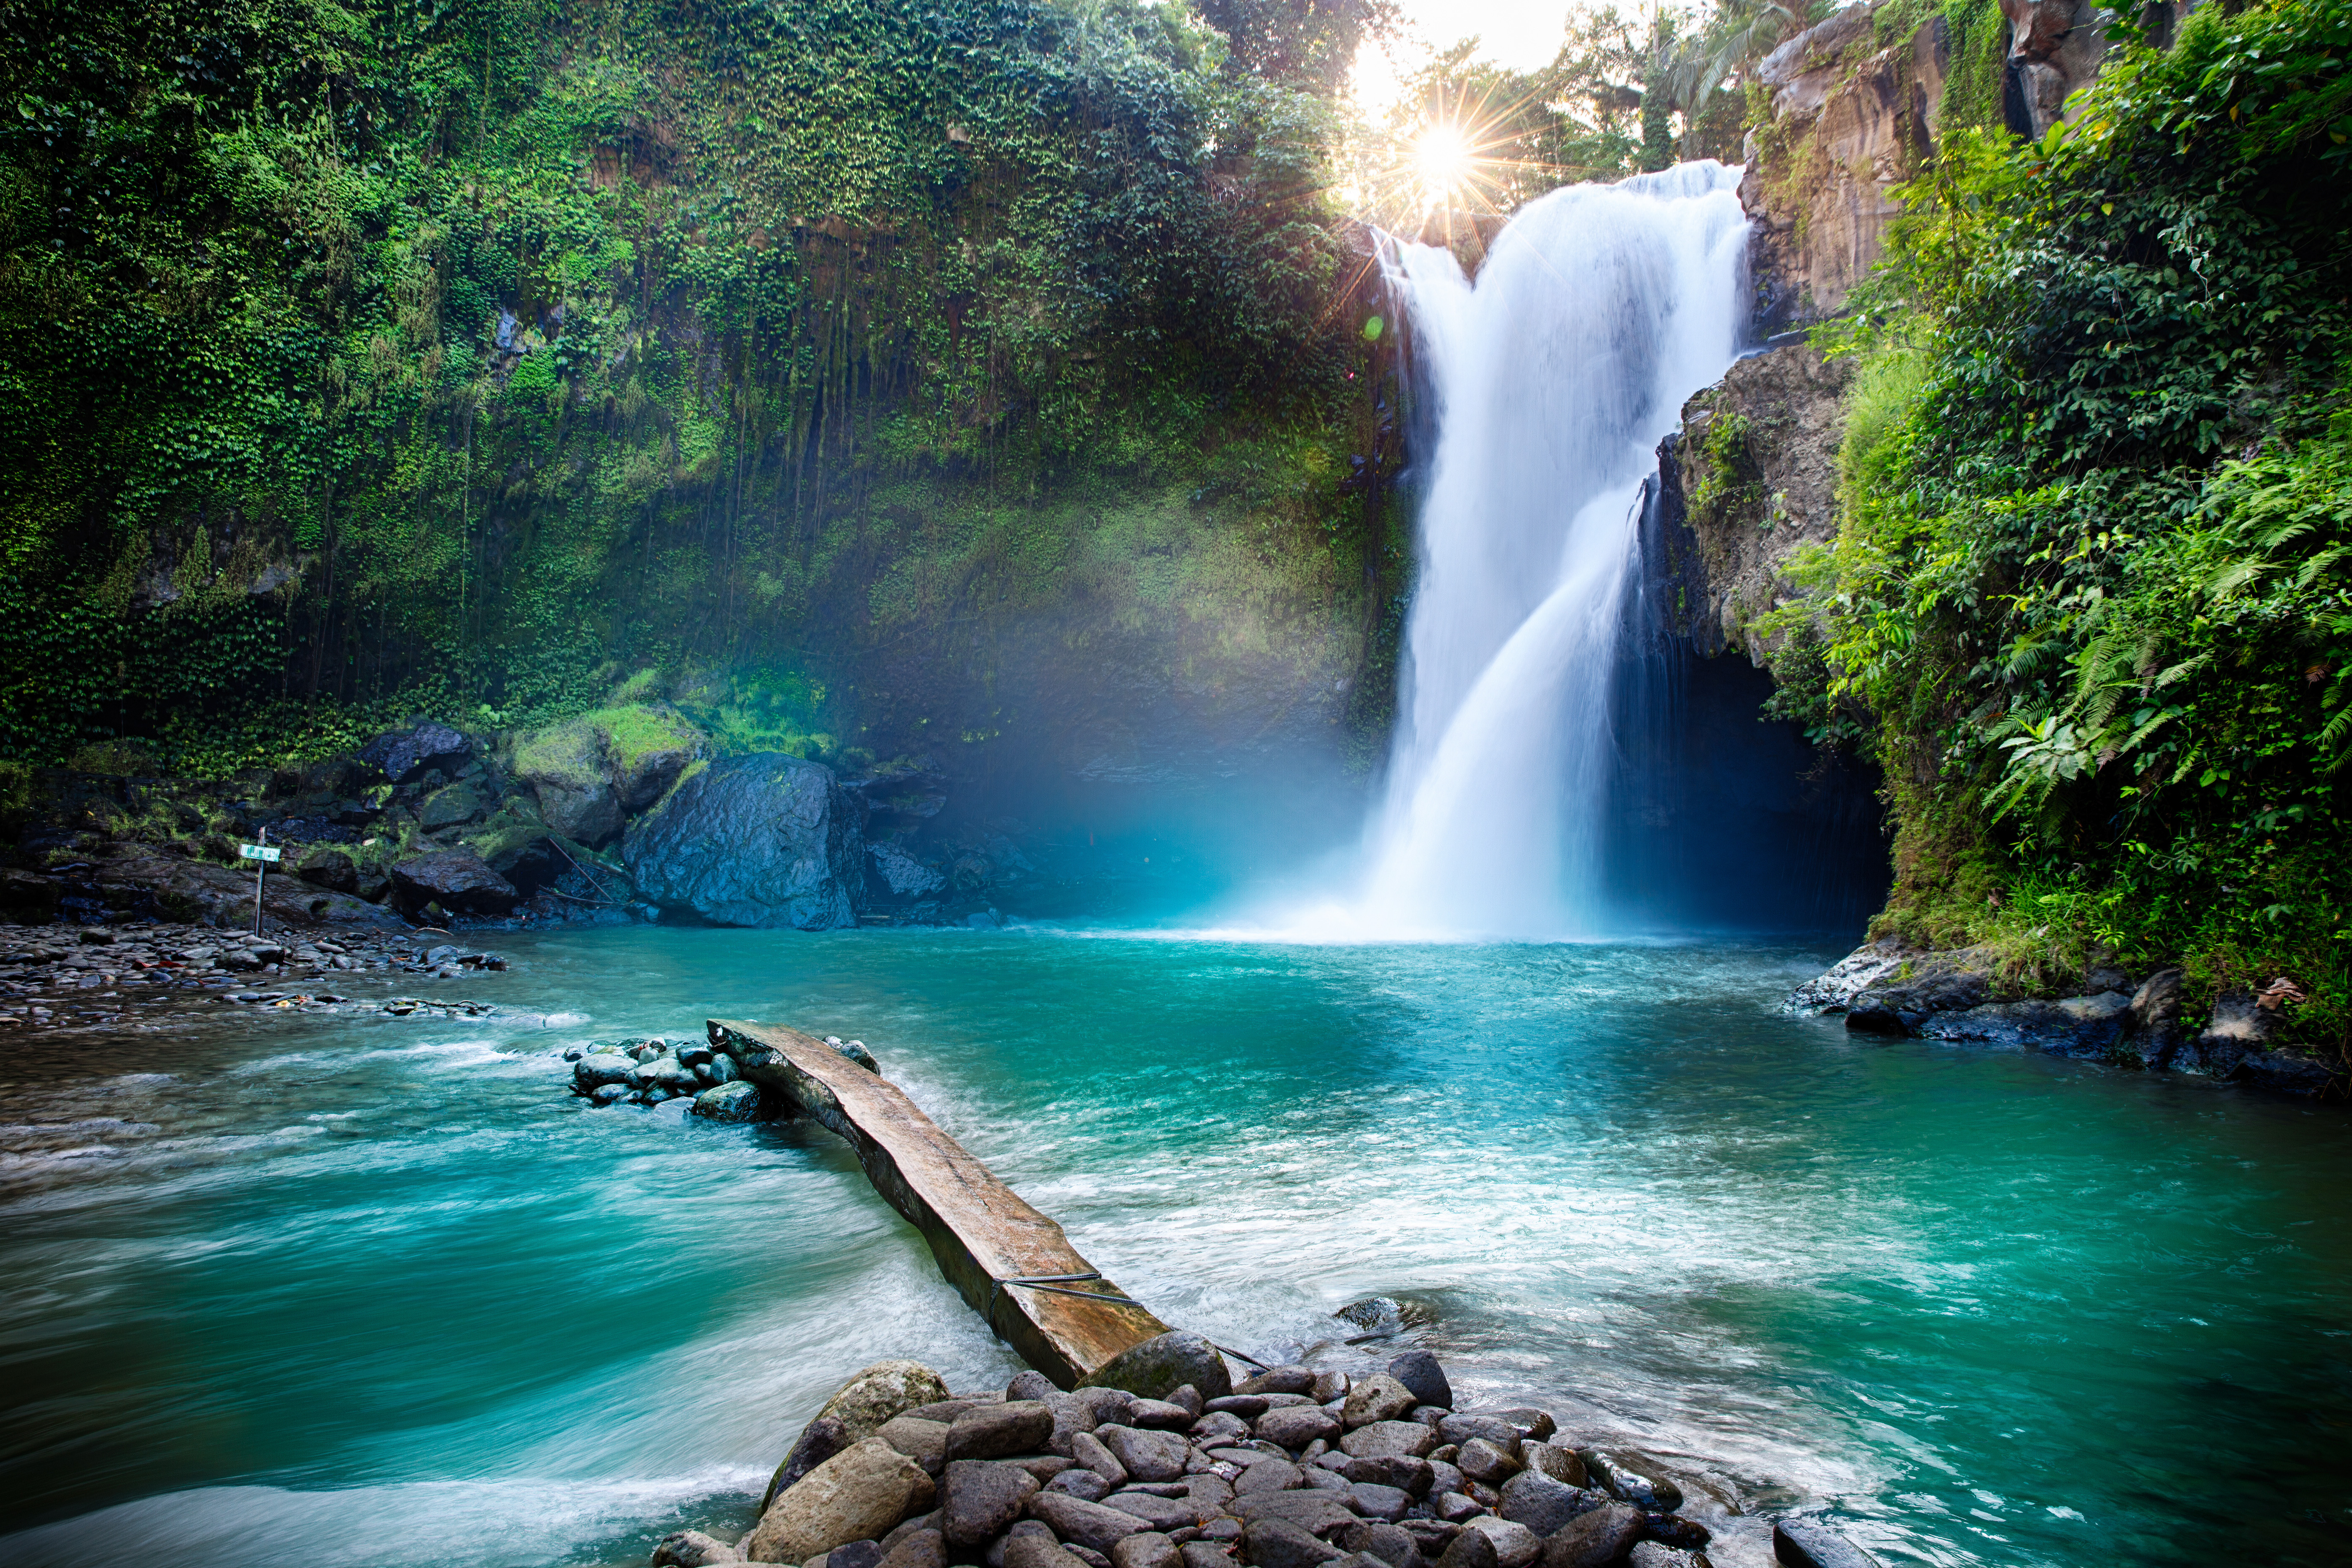 Waterfall Hidden In The Tropical Jungle Nature Wallpaper Cool Digital Photography